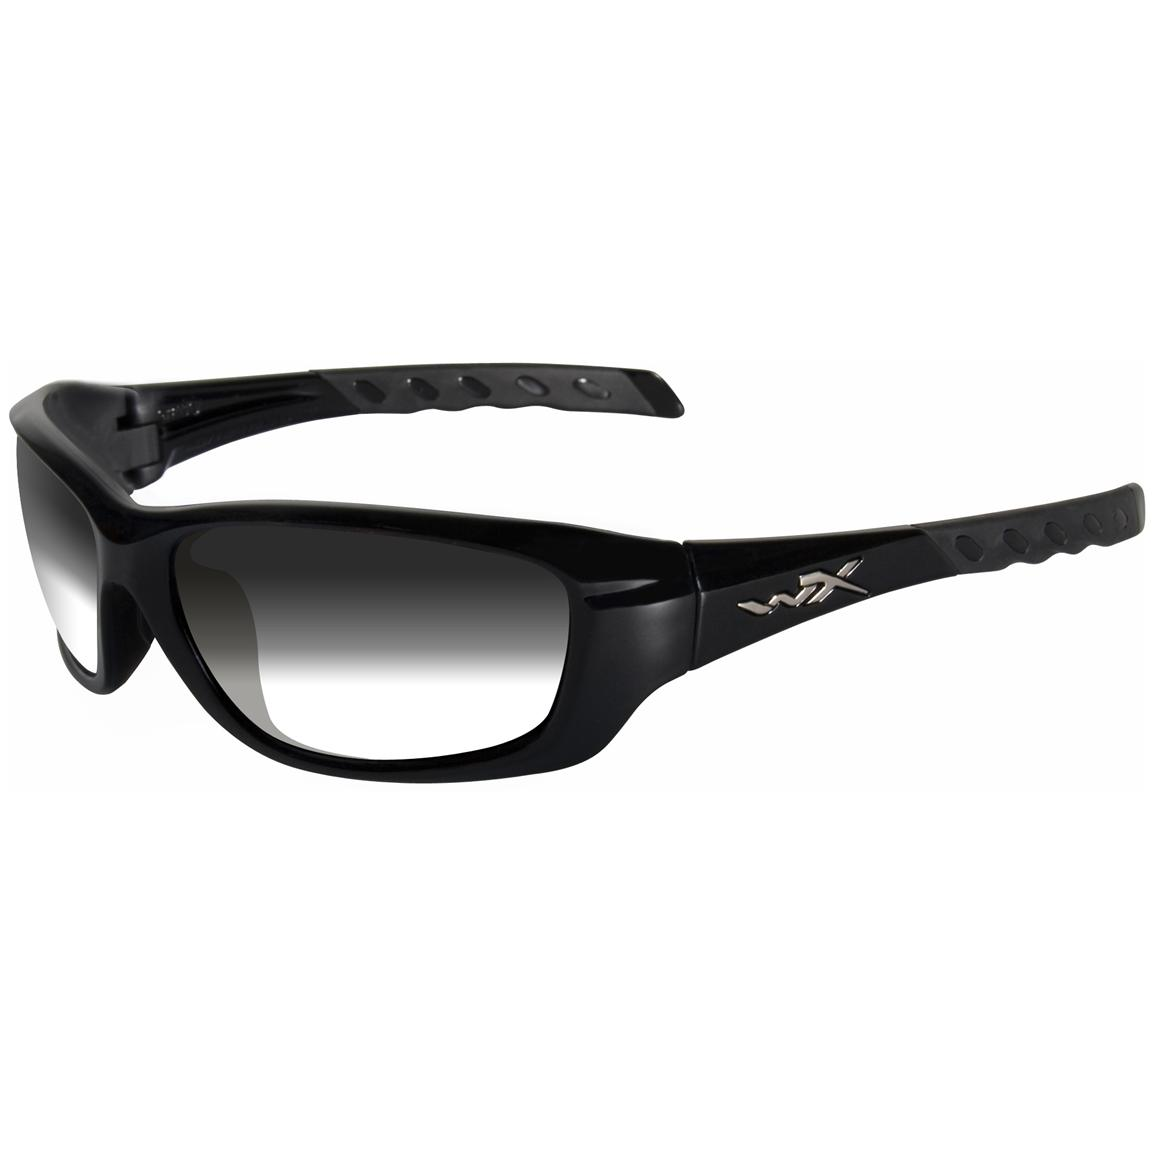 Wiley X® Gravity Climate Control Light-Adjusting Sunglasses